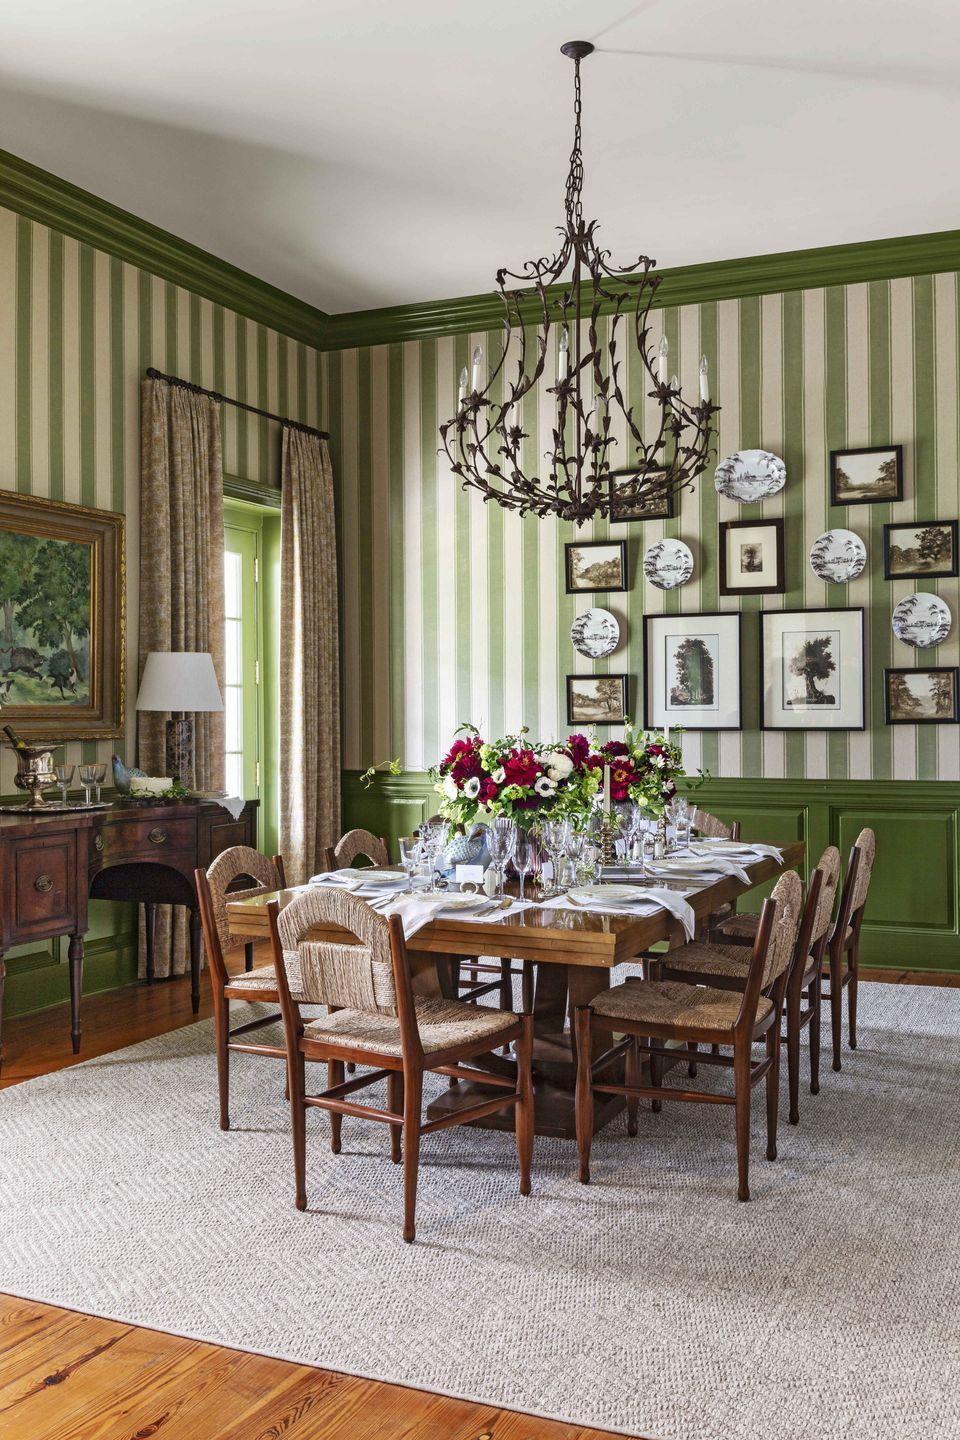 <p>Here, designer Andrew Howard utilizes a grasscloth wallpaper in a vertical stripe for a dining room in a South Carolina hunting lodge. This textured grass cloth covering makes an excellent backdrop for framed landscapes and a set of serveware with bucolic designs and pairs well with matching trim.<br></p>